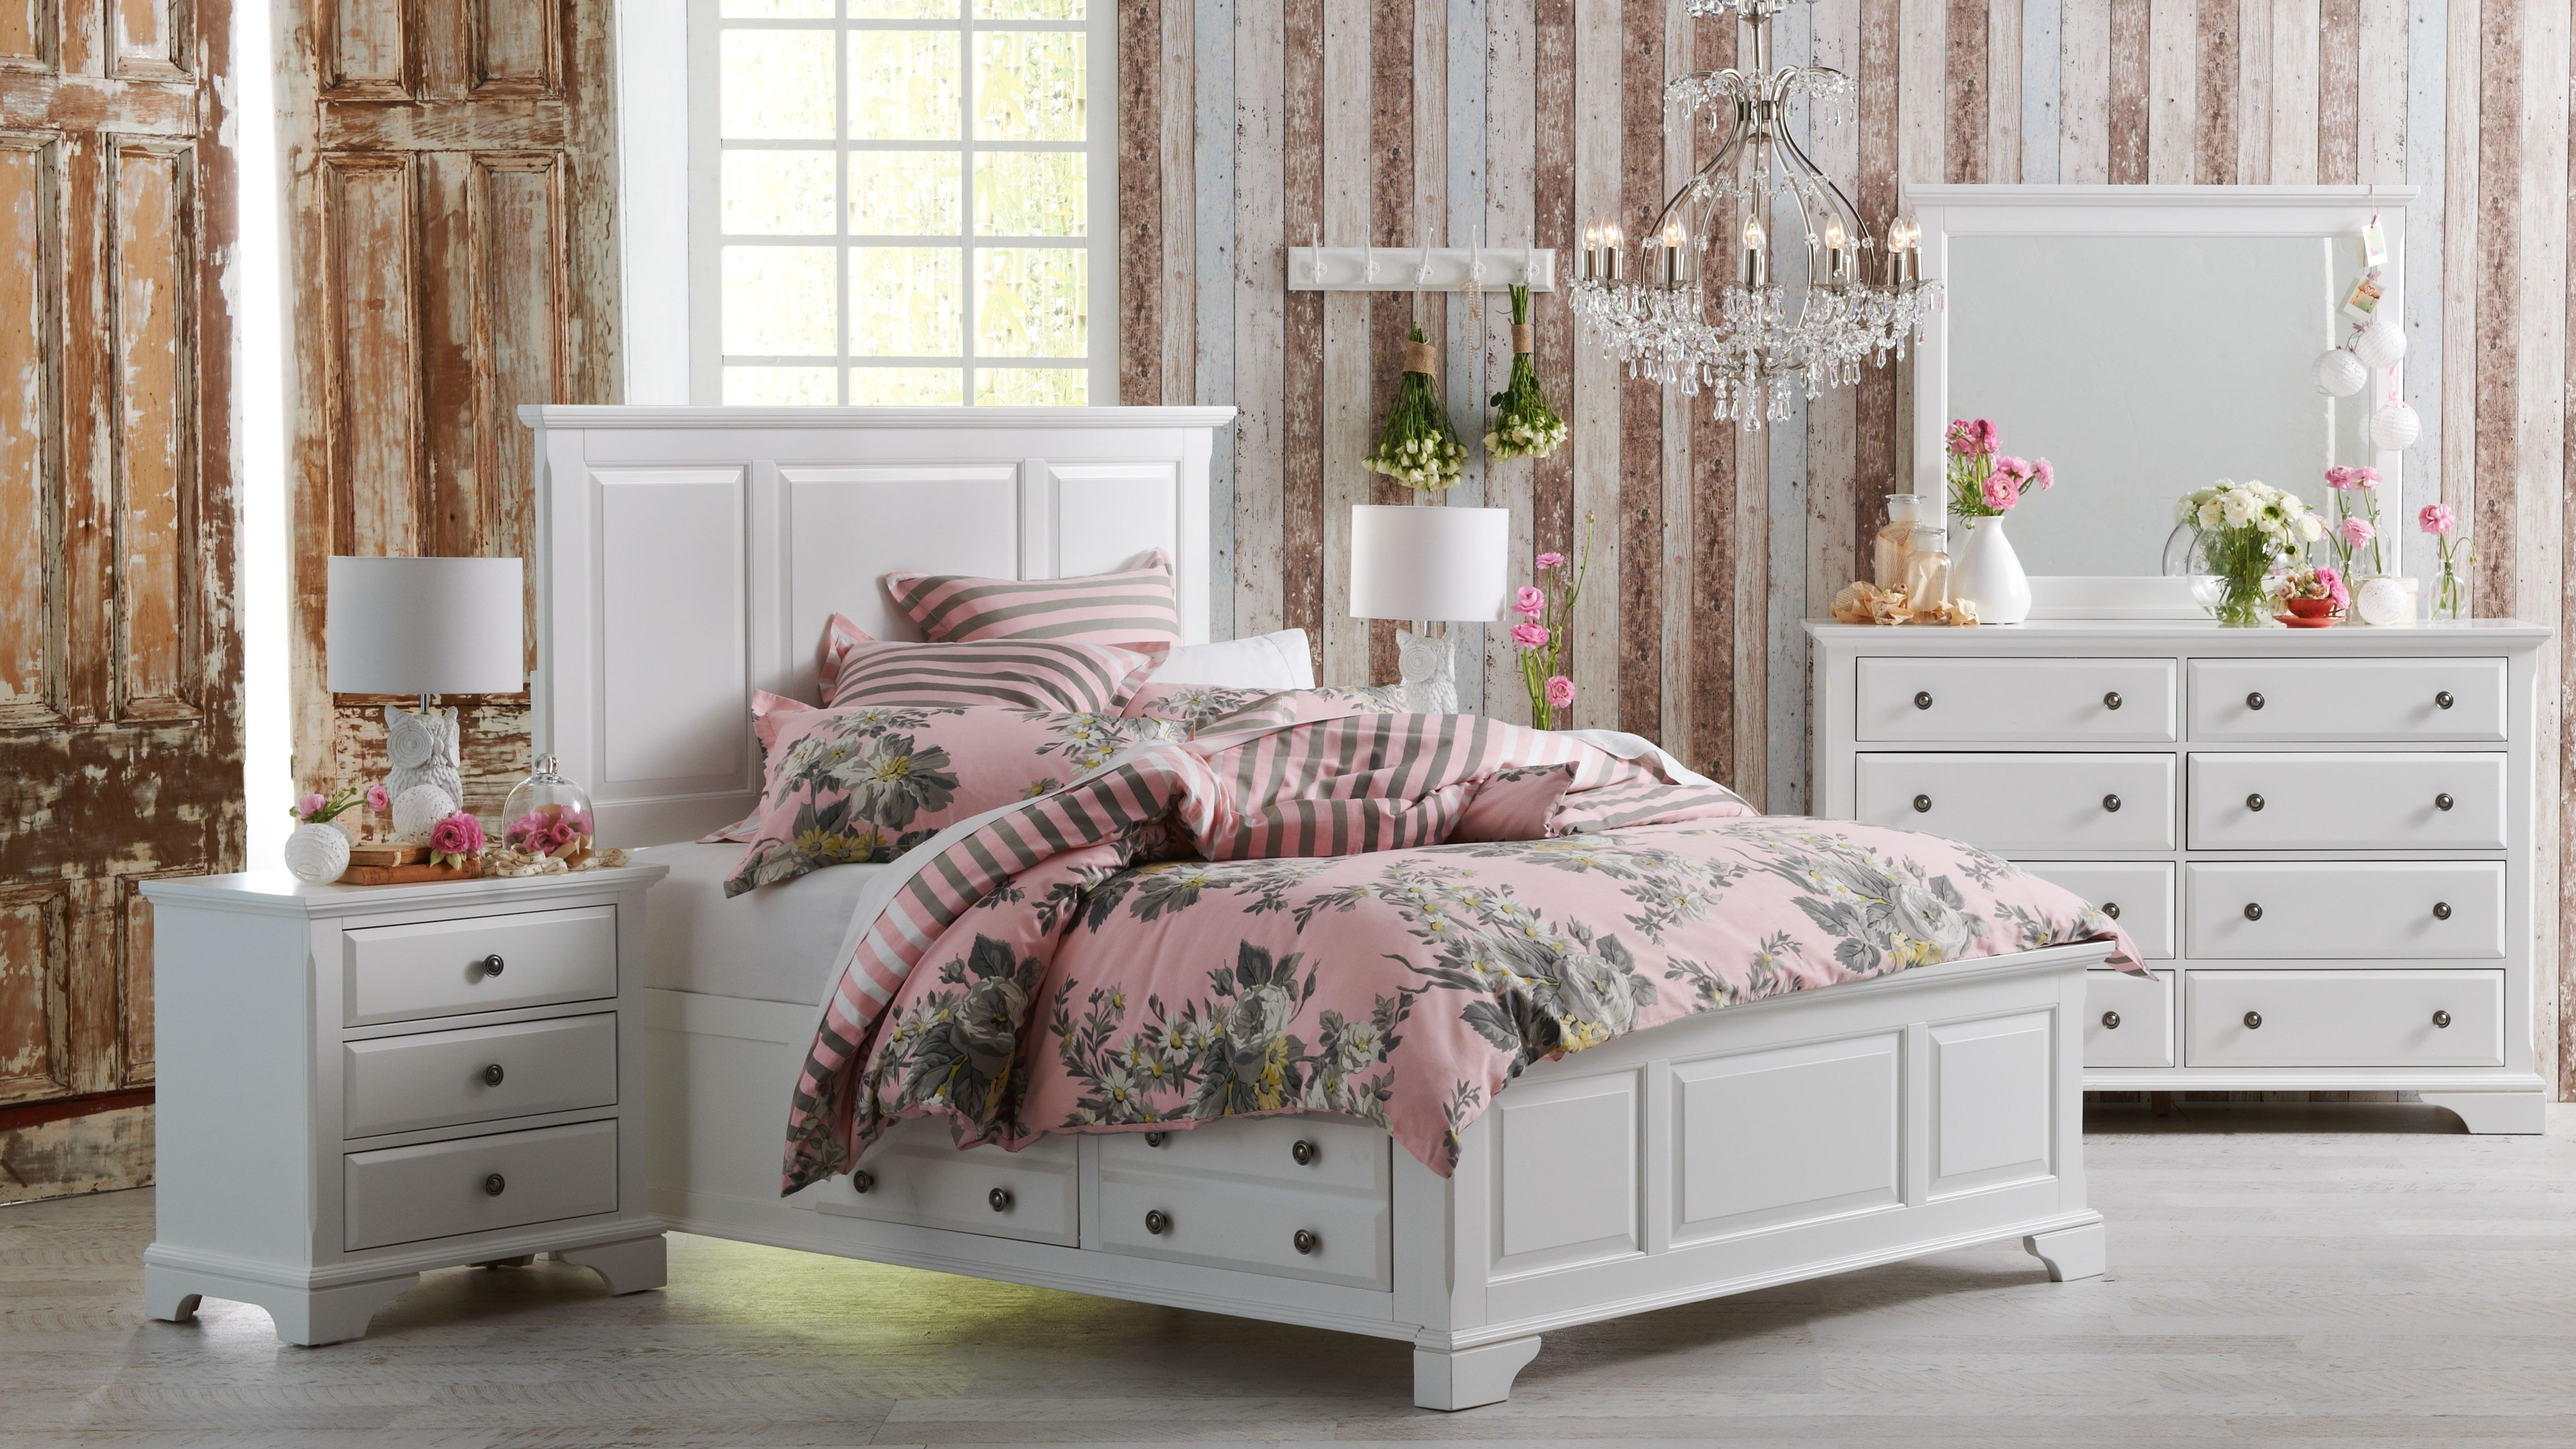 Impression Queen Bed Harvey norman Furniture Pinterest